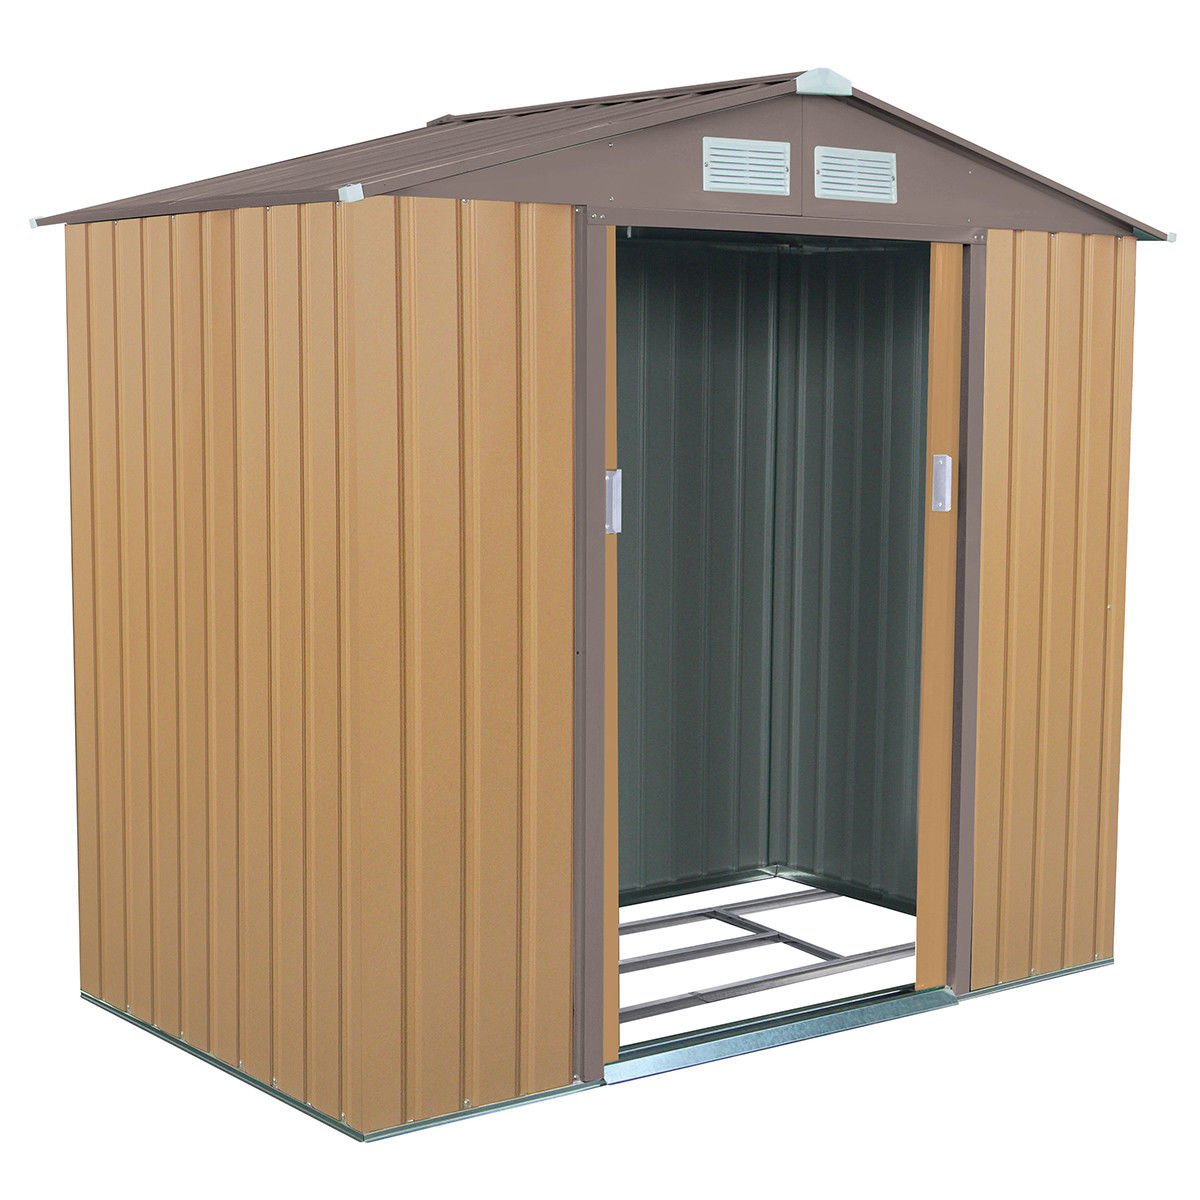 Goplus 7' X 4' Outdoor Storage Shed Tool House Sliding Door Steel Garden Backyard Sheds (Khaki)